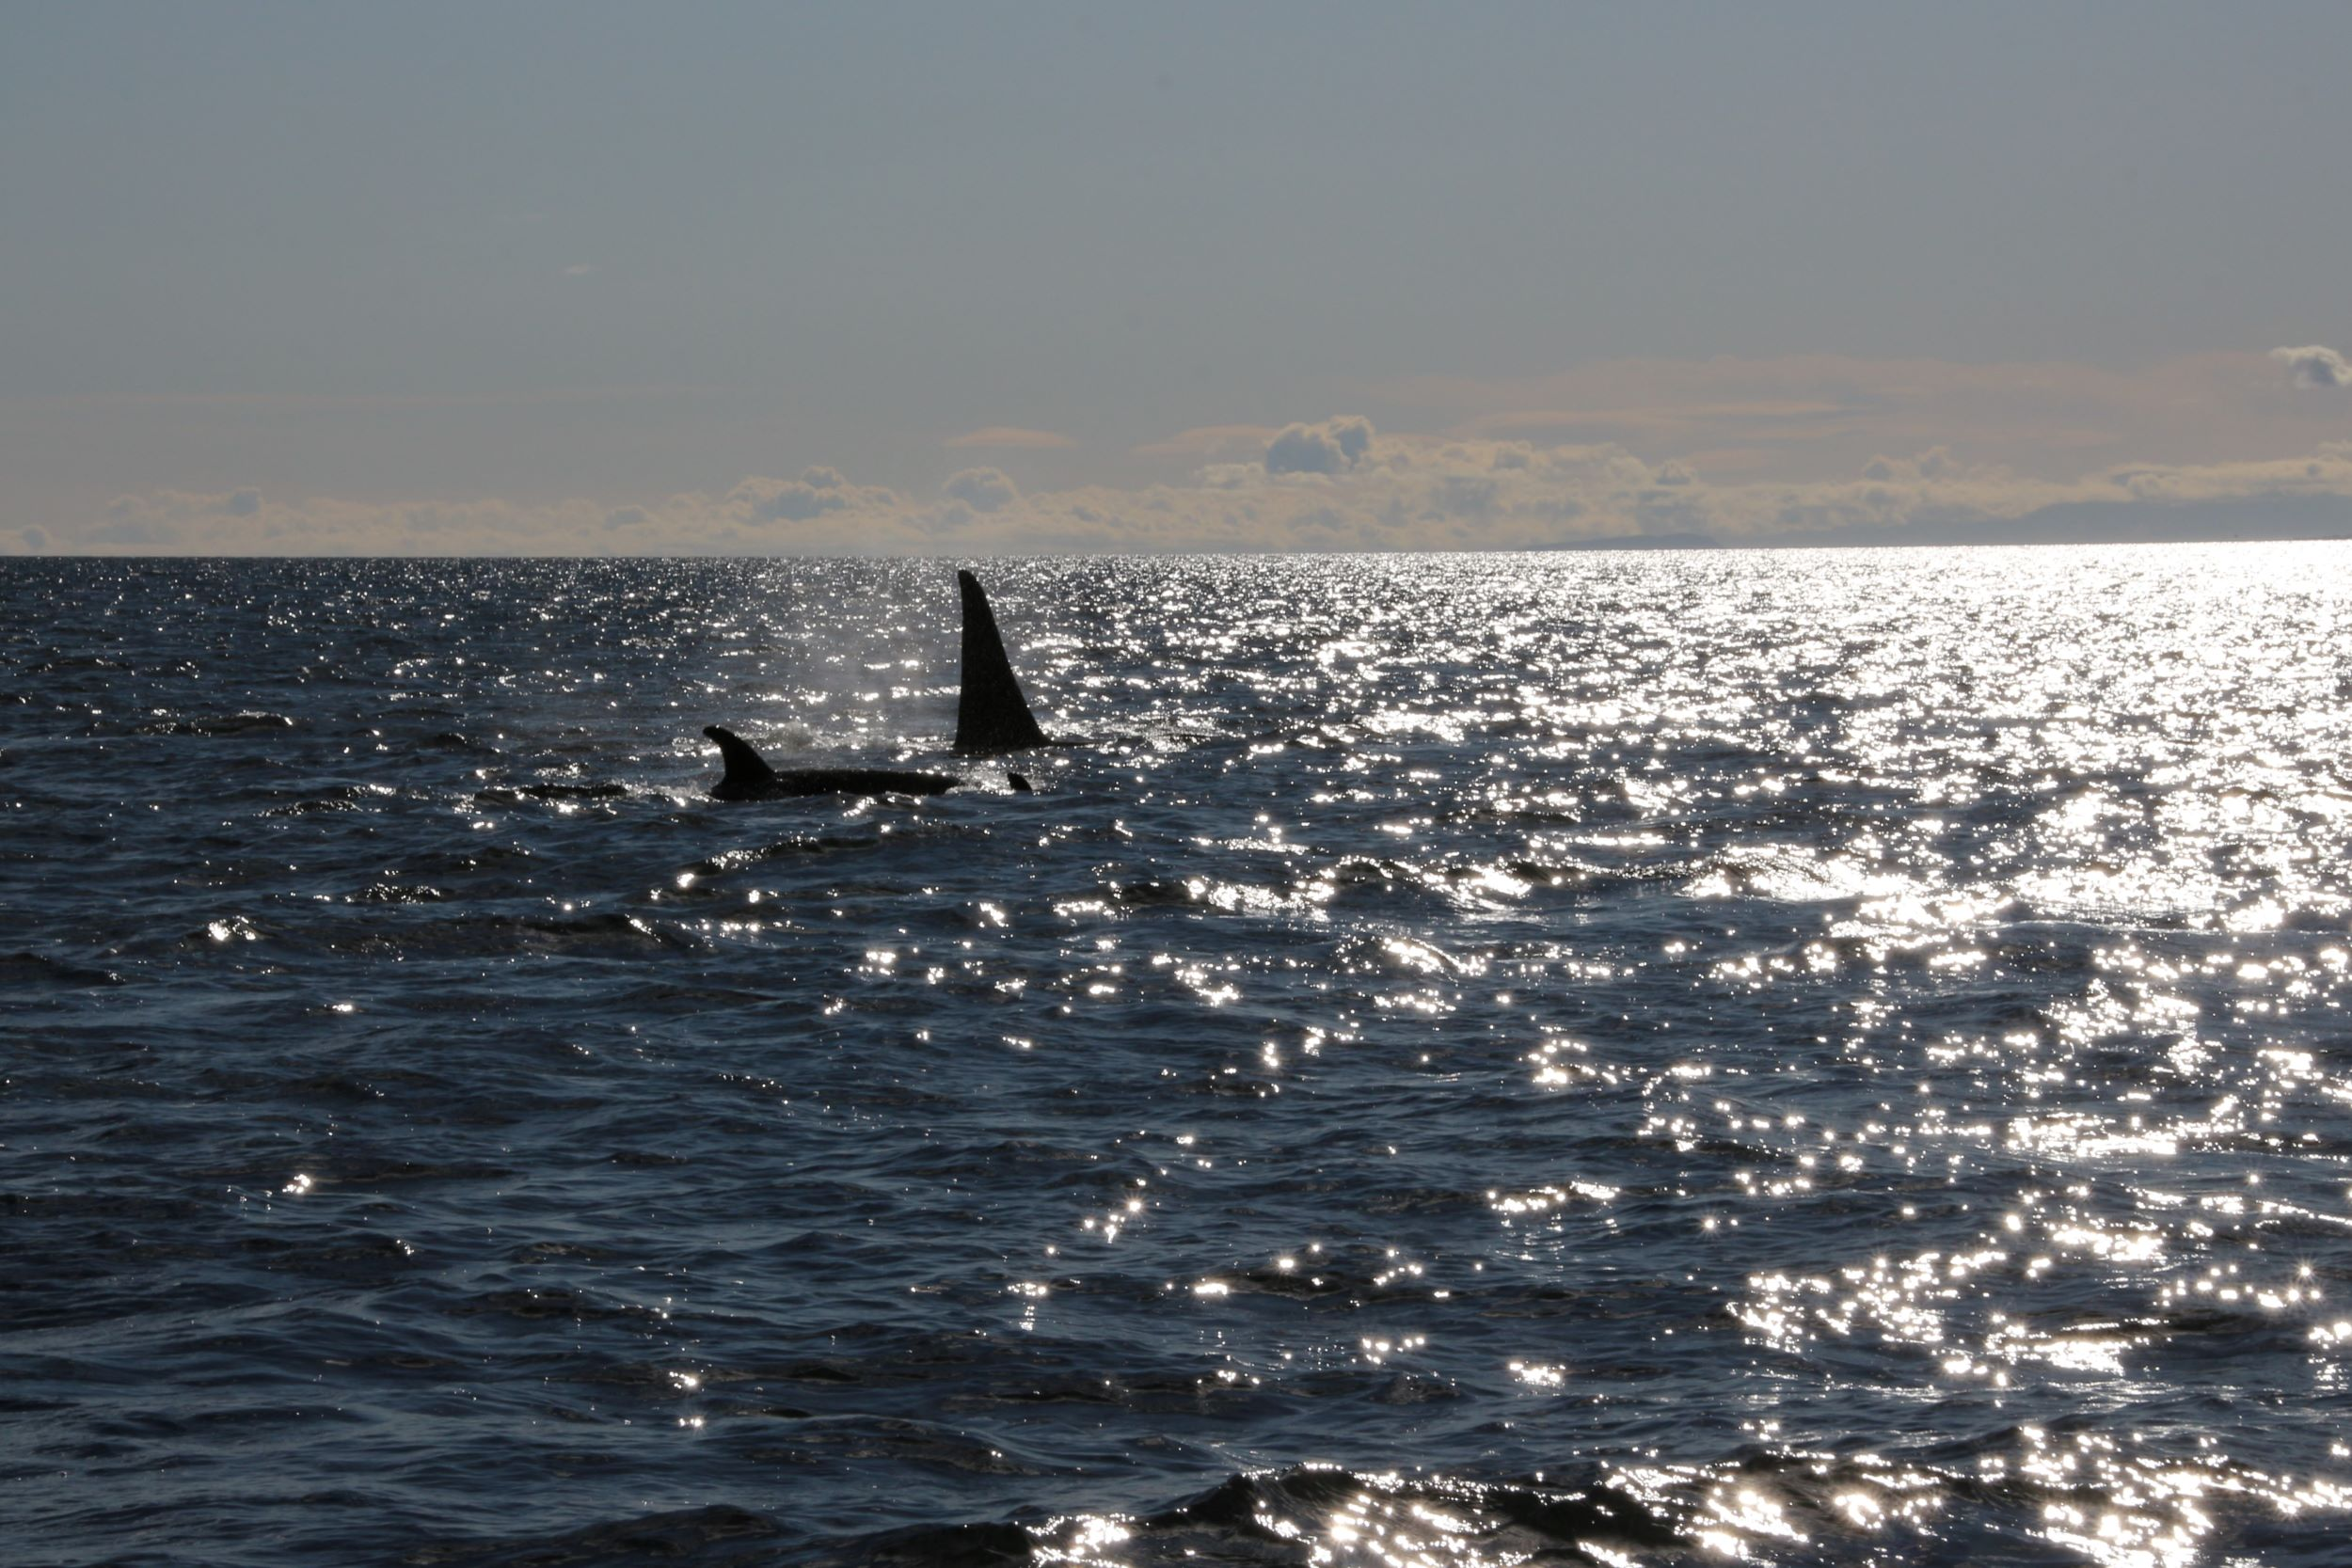 Orca whales near Campbell River